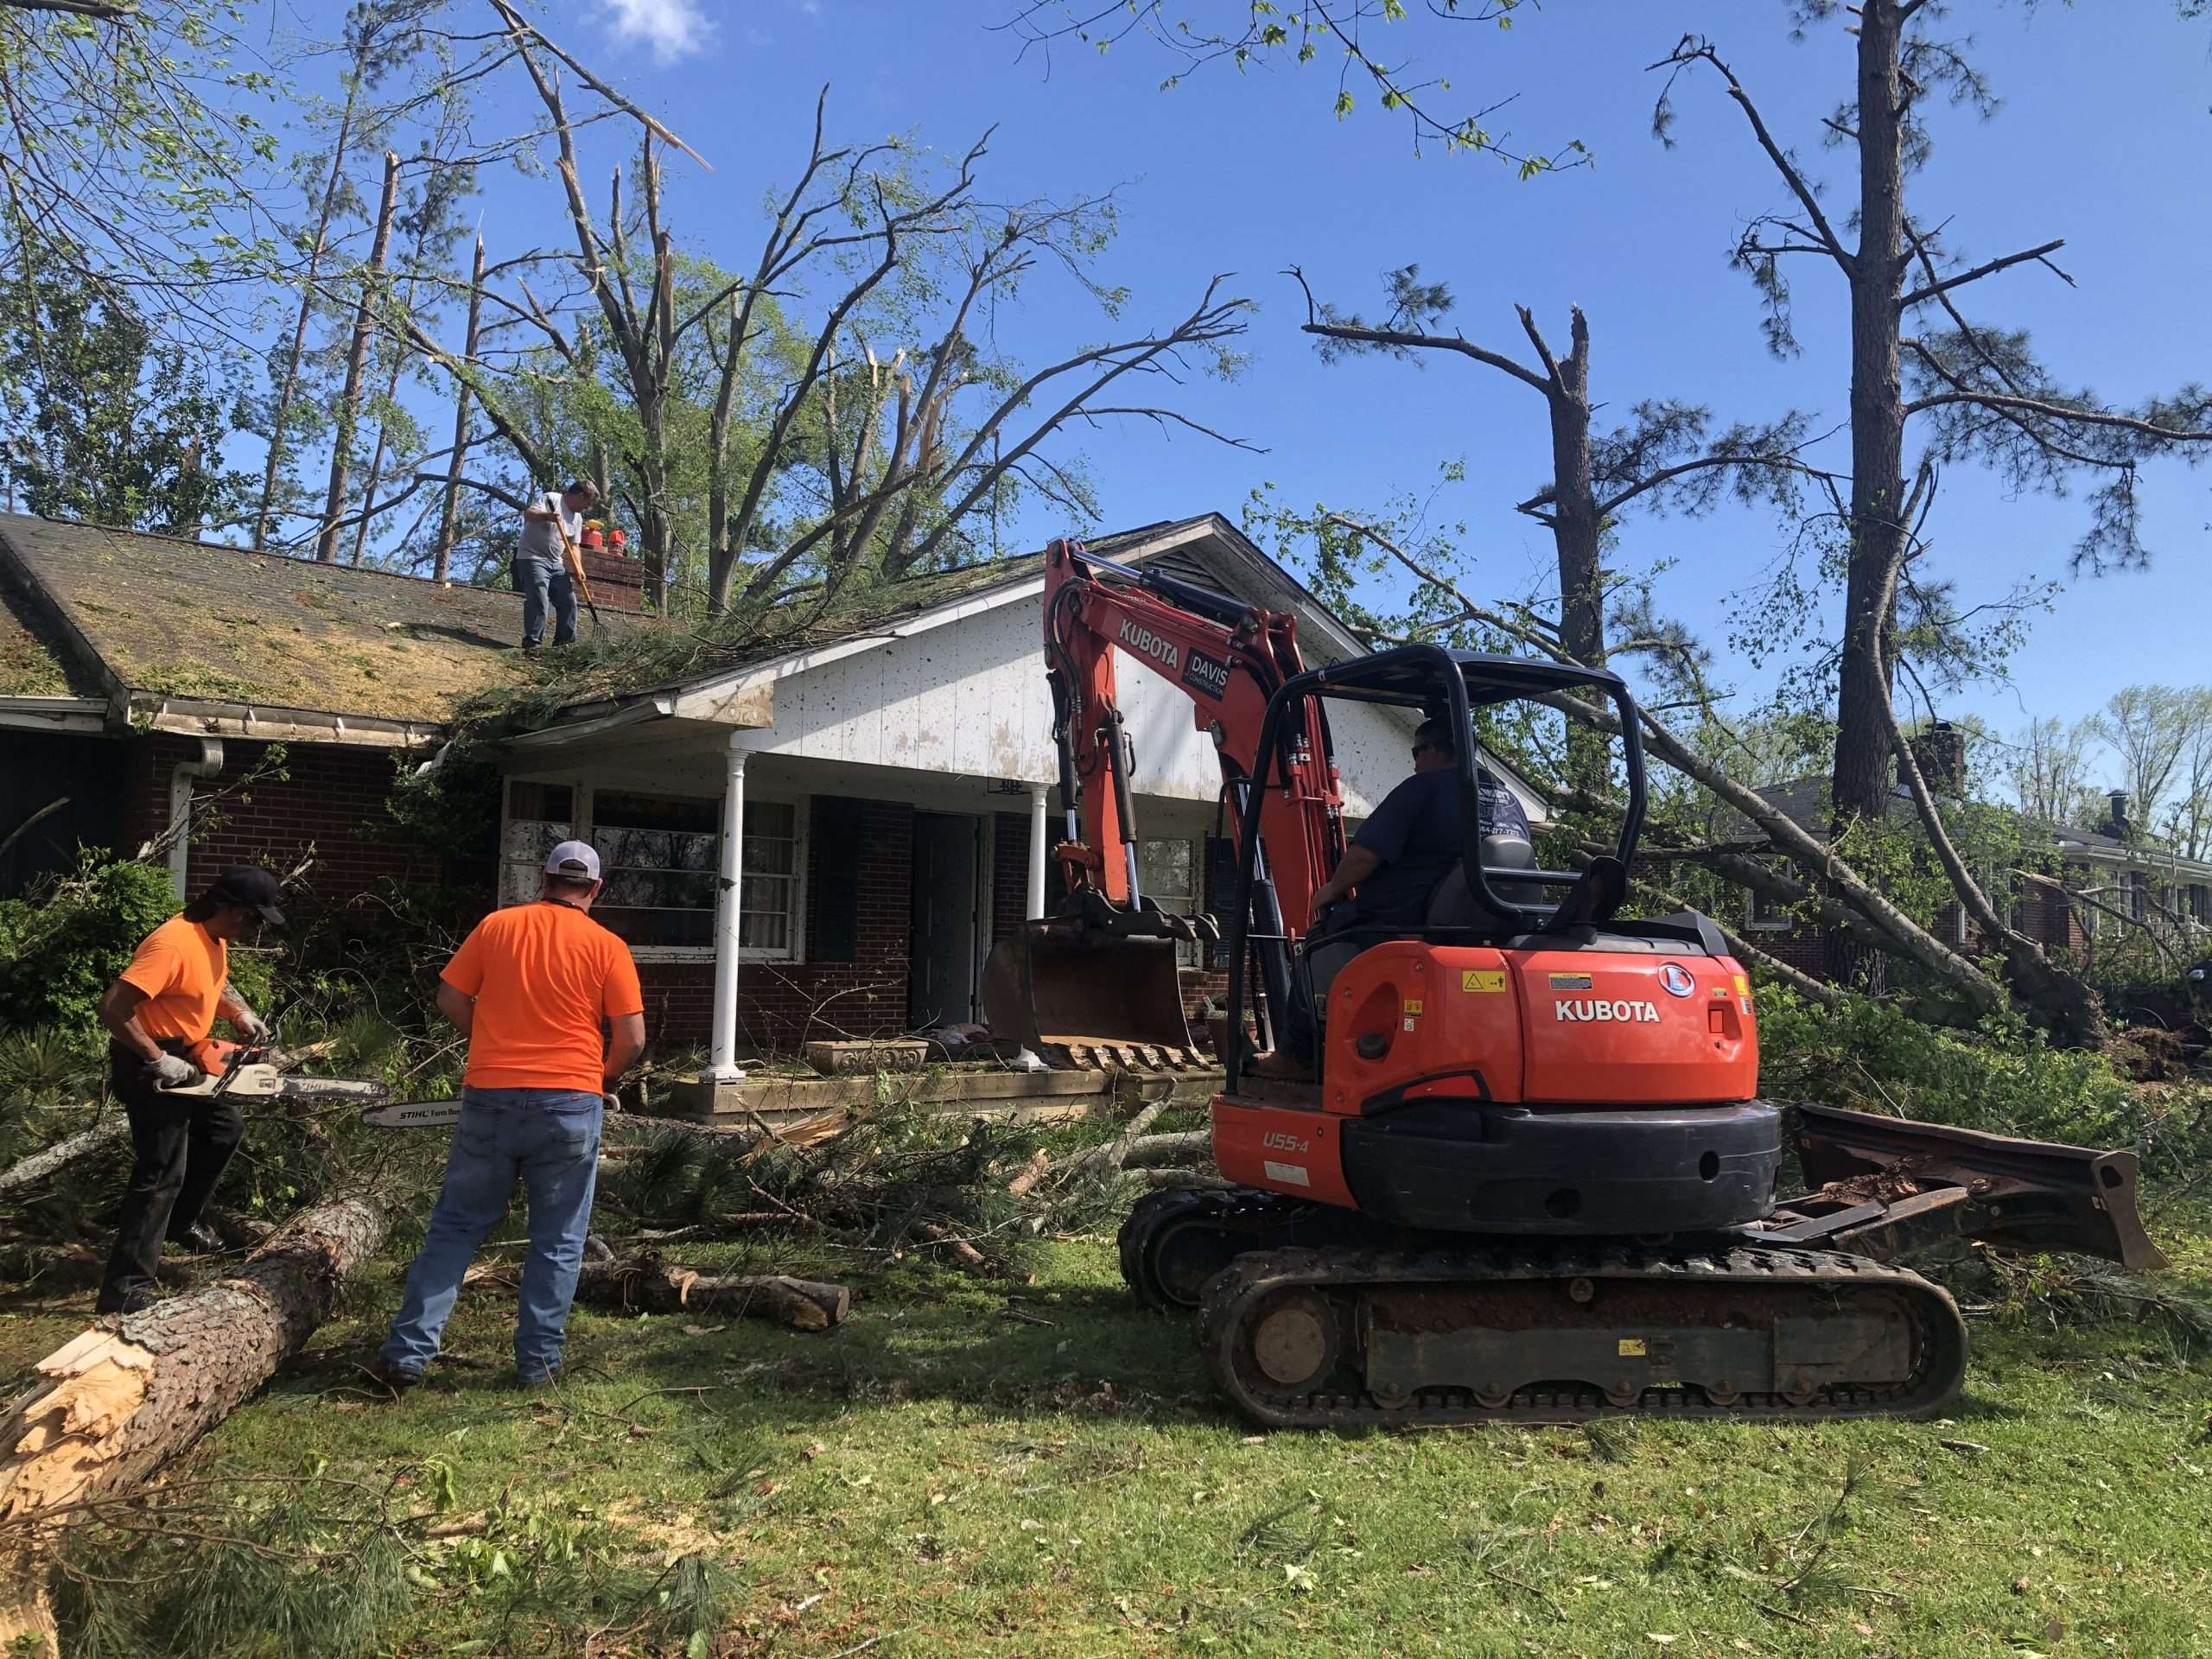 JDavis crew helps after tornado